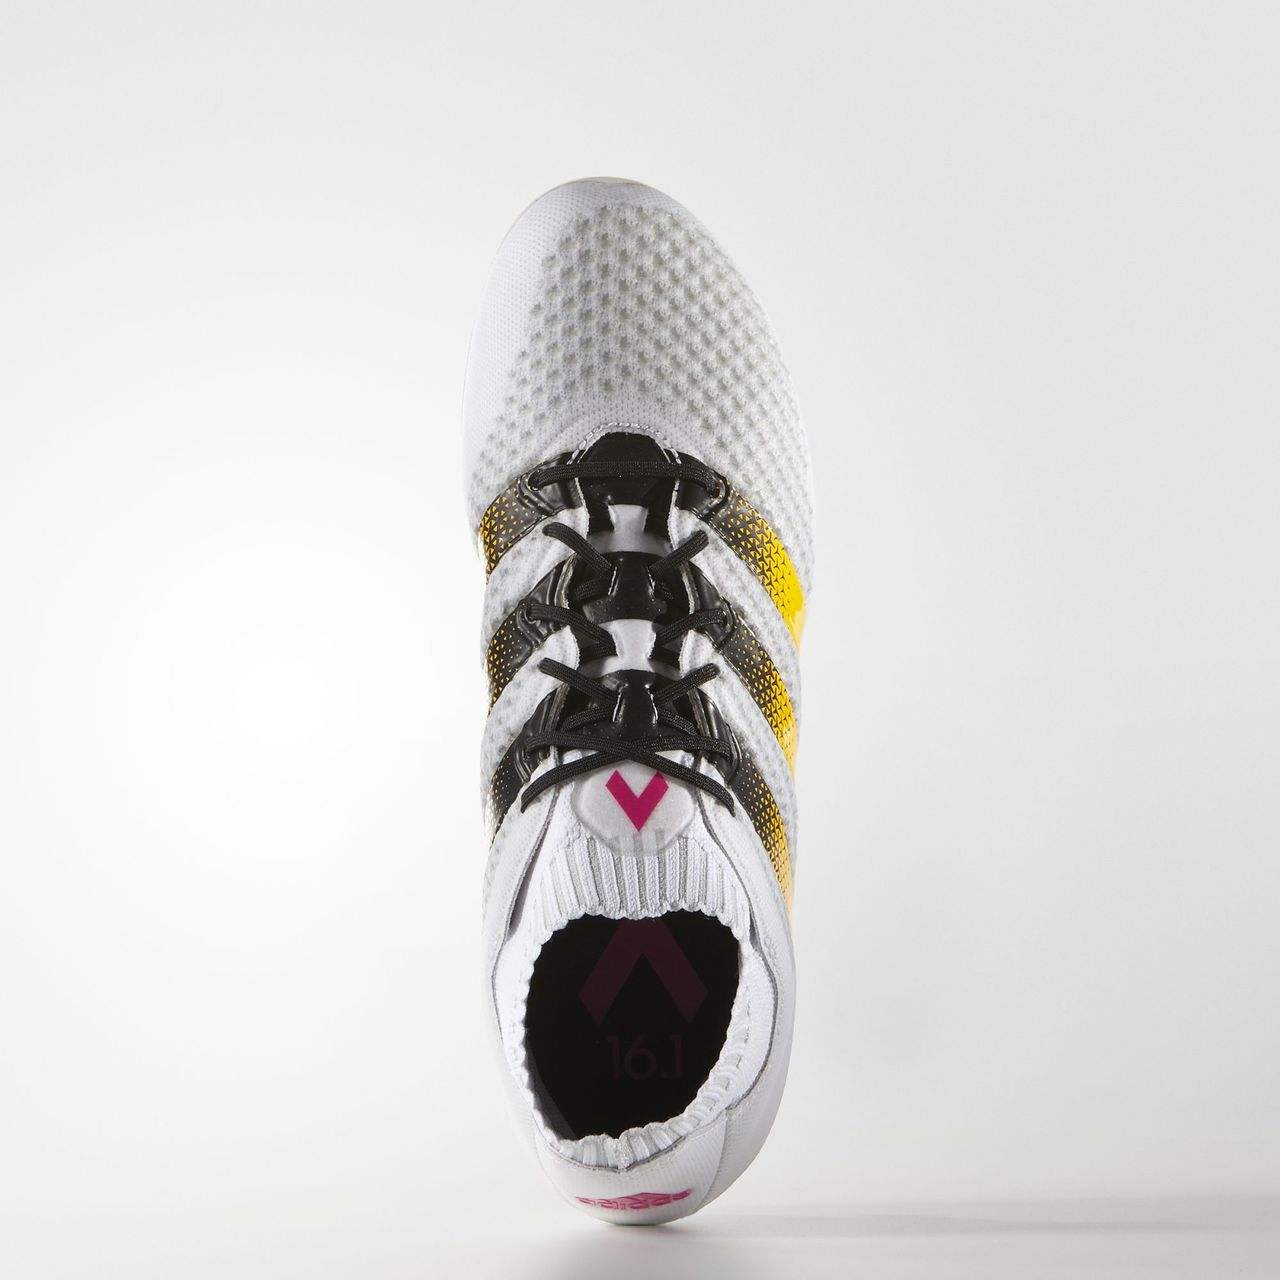 Adidas ACE 16.1 Primeknit Firm Ground Boots - White   Solar Gold ... 9ccbb301fa